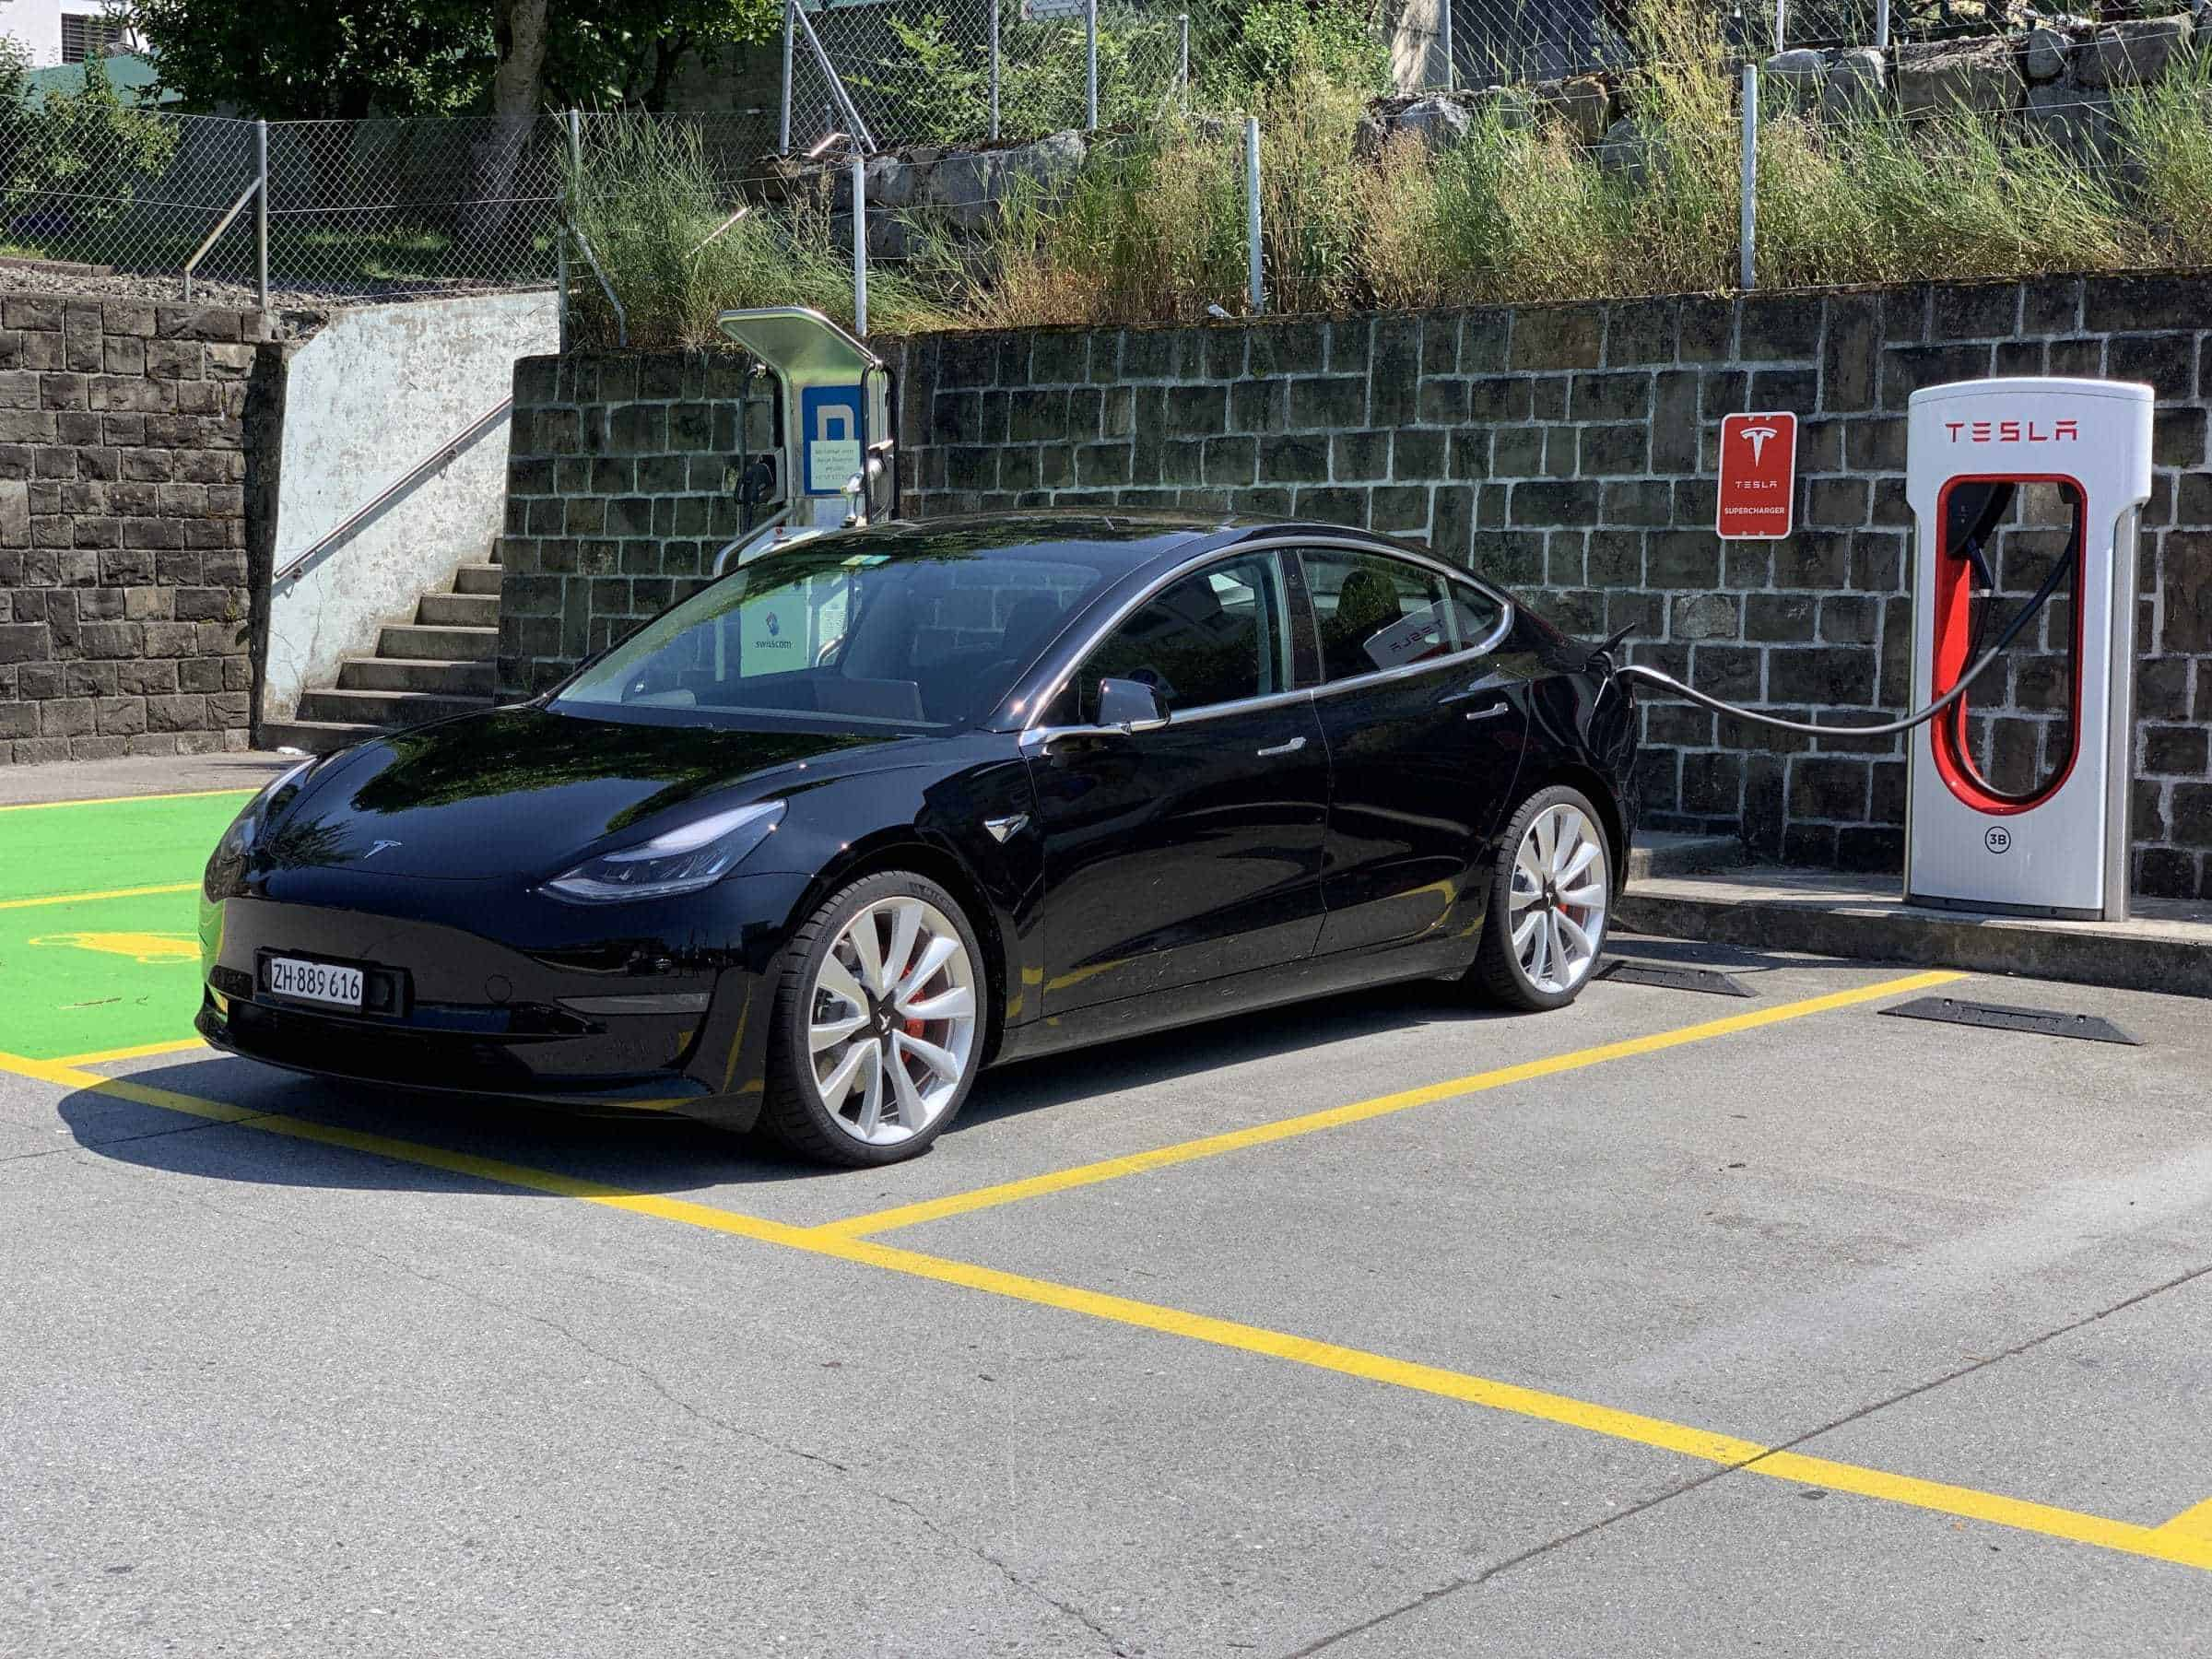 Tesla Model 3 Supercharger Plugged In Techgarage